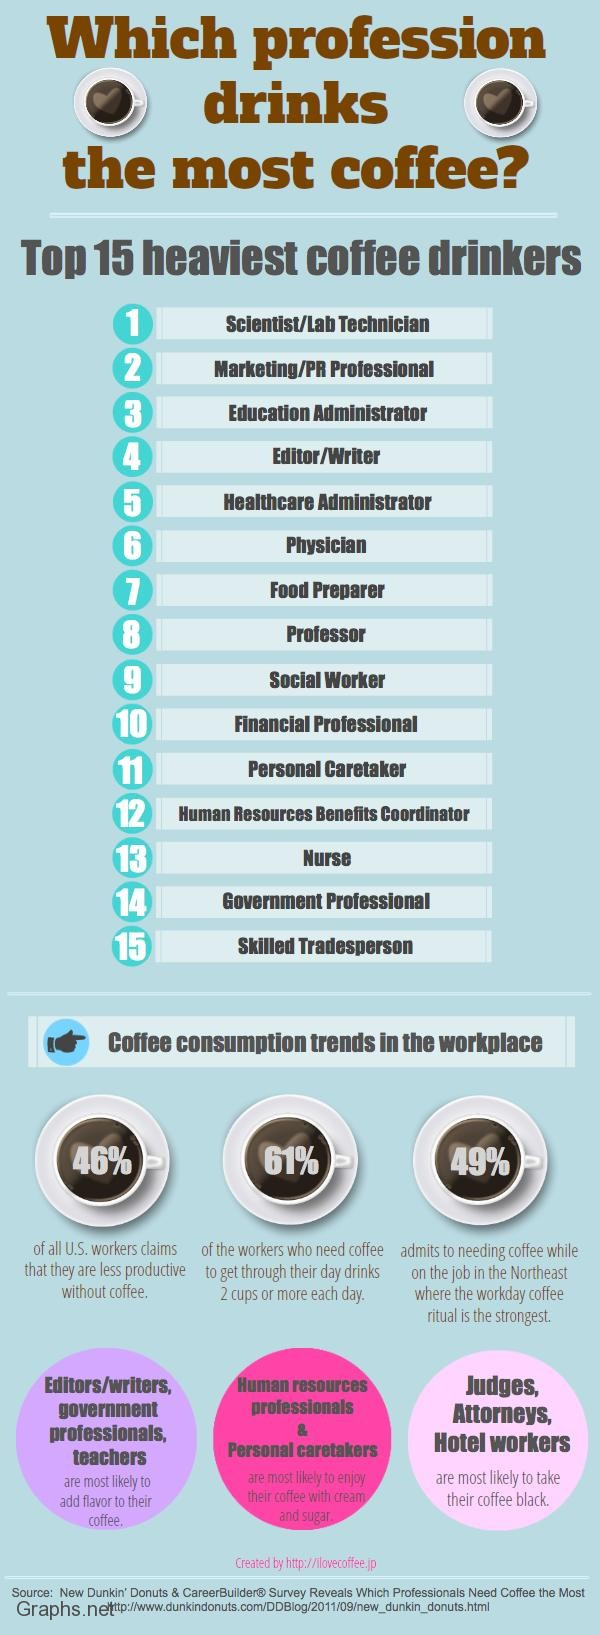 Coffee and professions